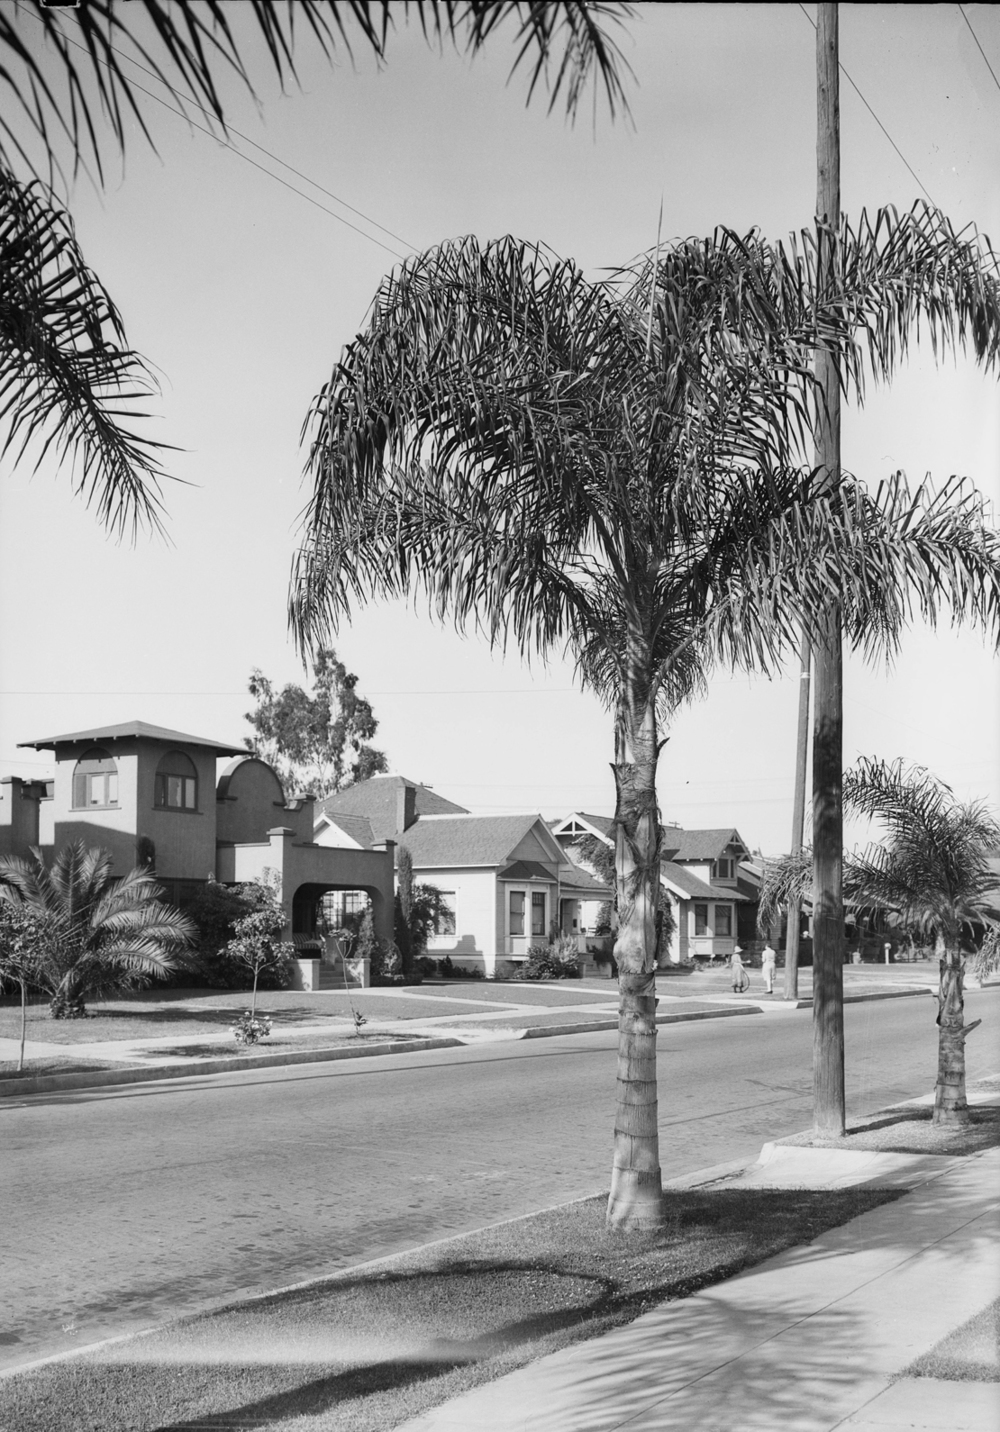 Palm_tree_for_View_Park_Los_Angeles_CA_1928_image.jpg